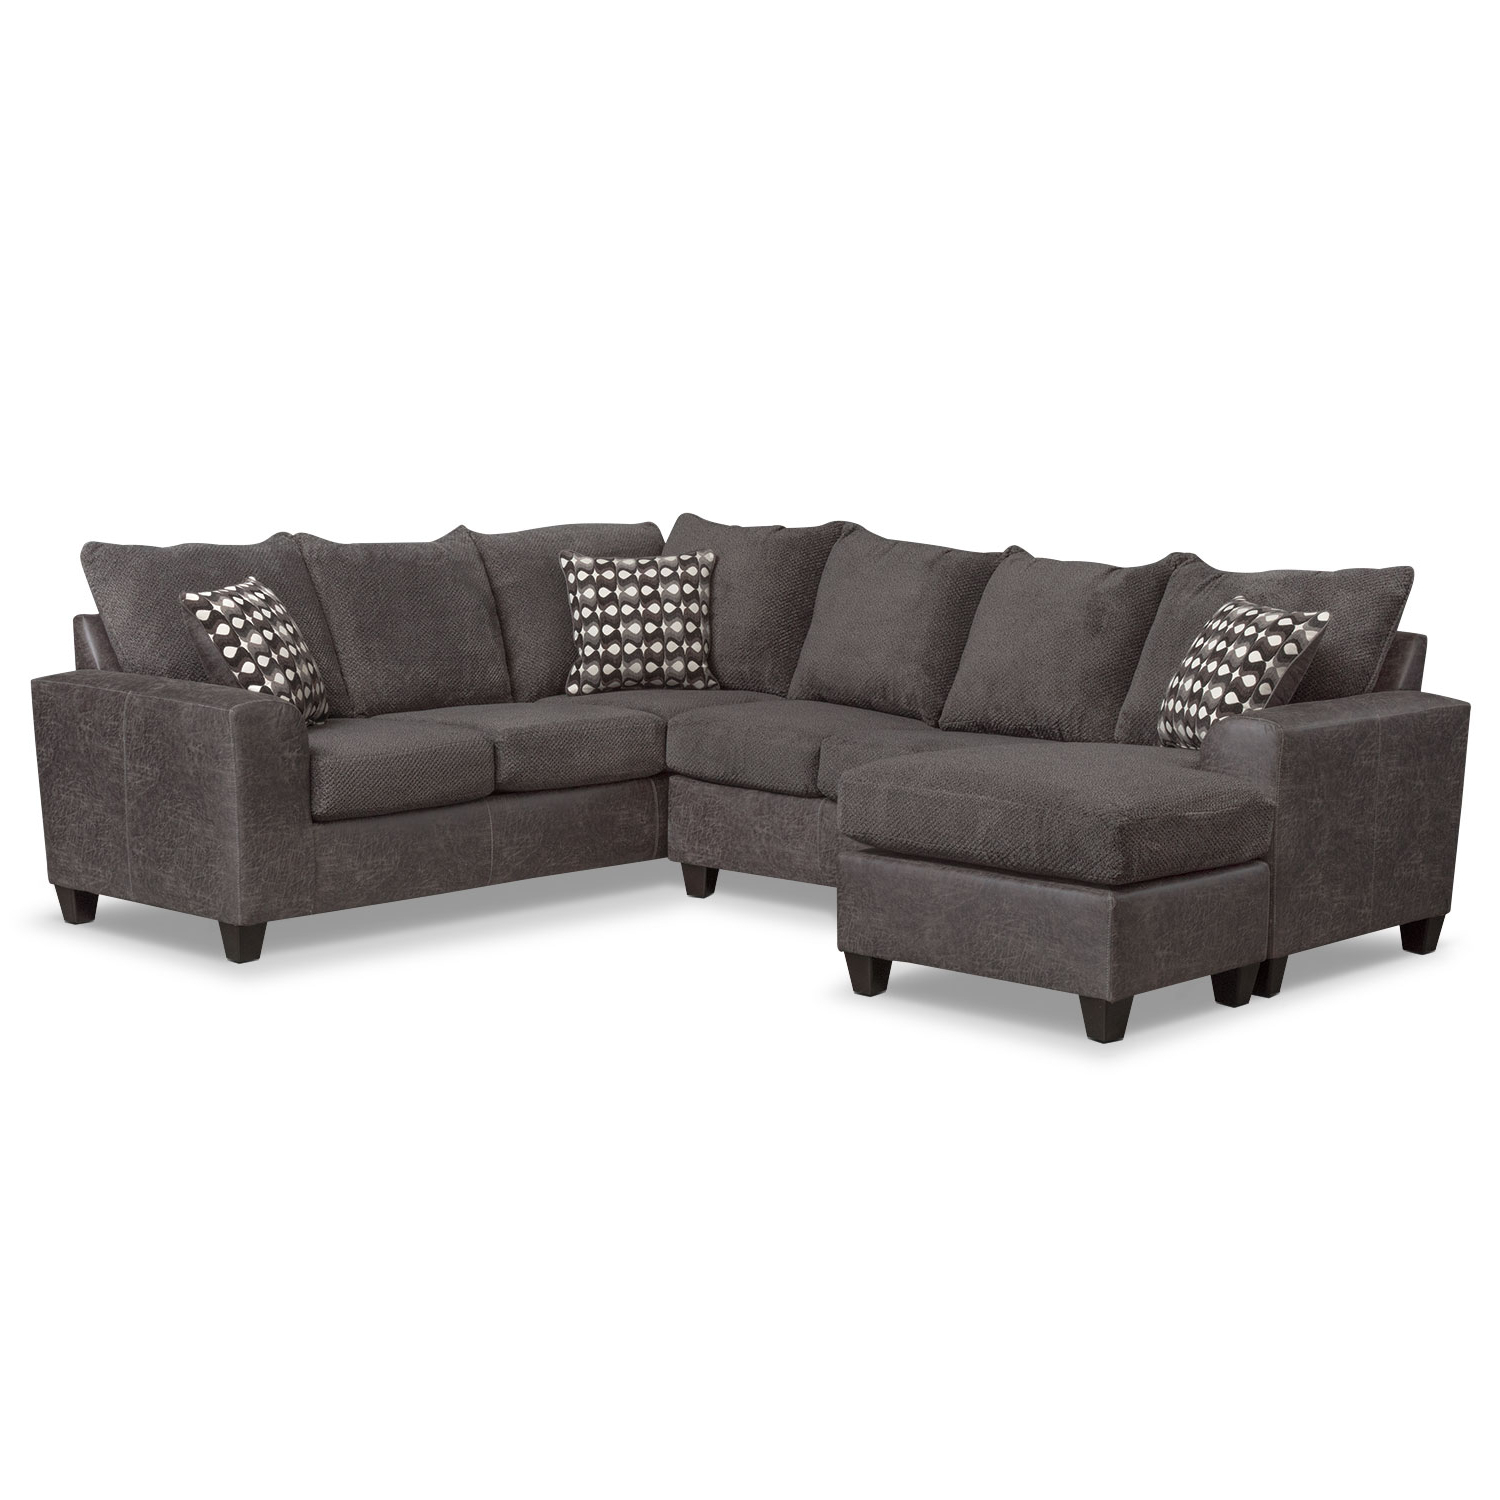 Lucy Grey 2 Piece Sleeper Sectionals With Raf Chaise With Newest Sleeper Sectional With Chaise – Tidex (View 13 of 20)